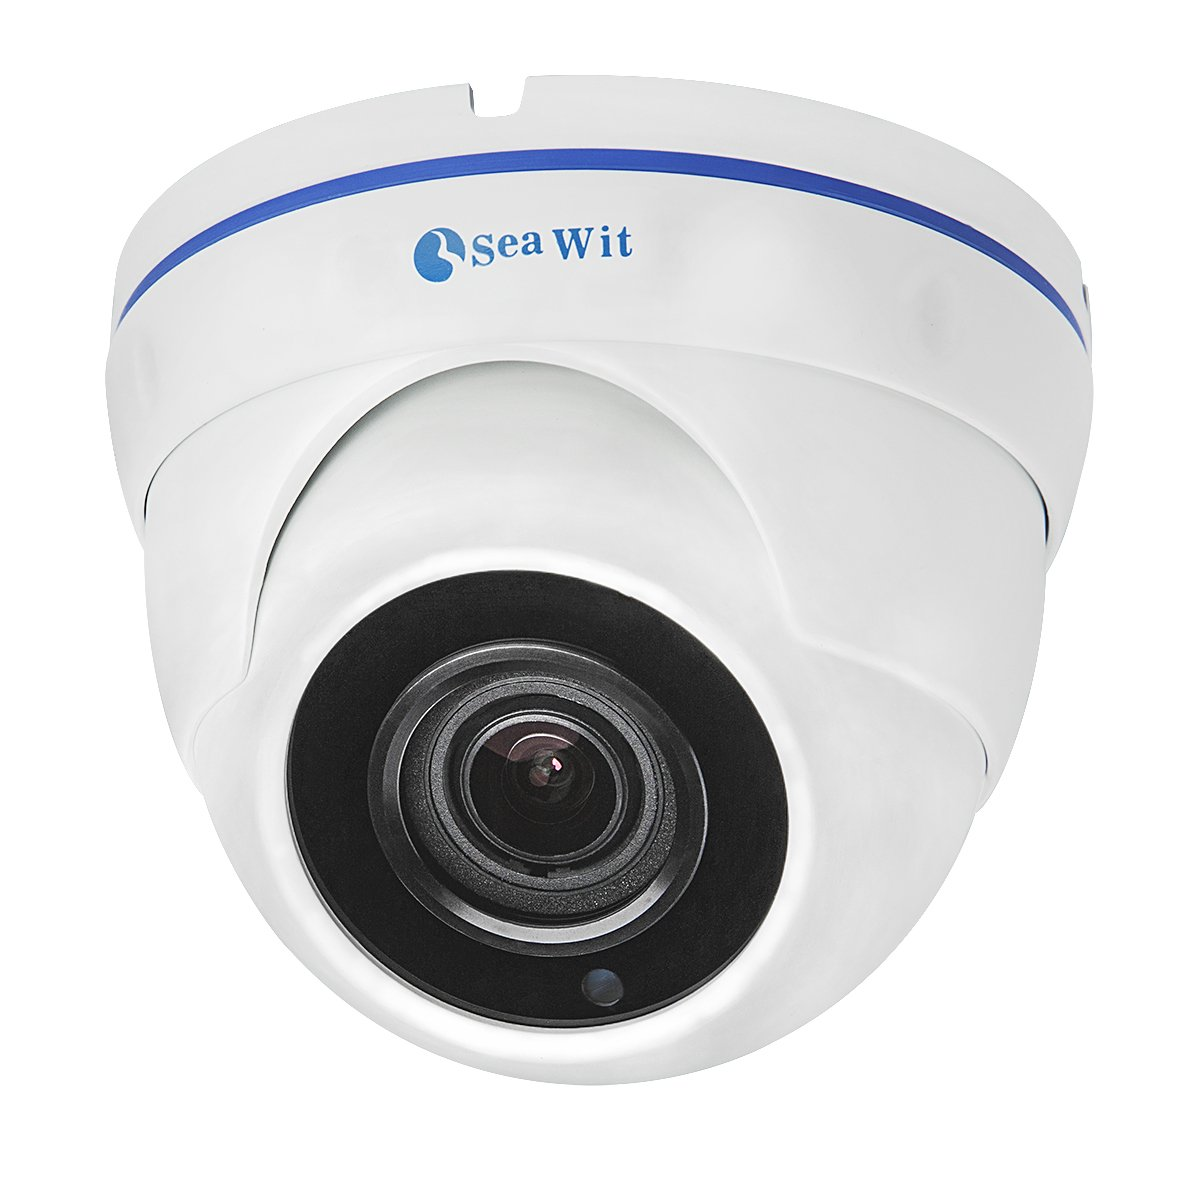 5 Megapixel Dome Security IP Camera, Sea Wit H.265 HD POE(Power Over Ethernet) Surveillance Camera with 4x Optical zoom and 2.8-12mm AF lens, IP65 Indoor Camera, IR Night Vision